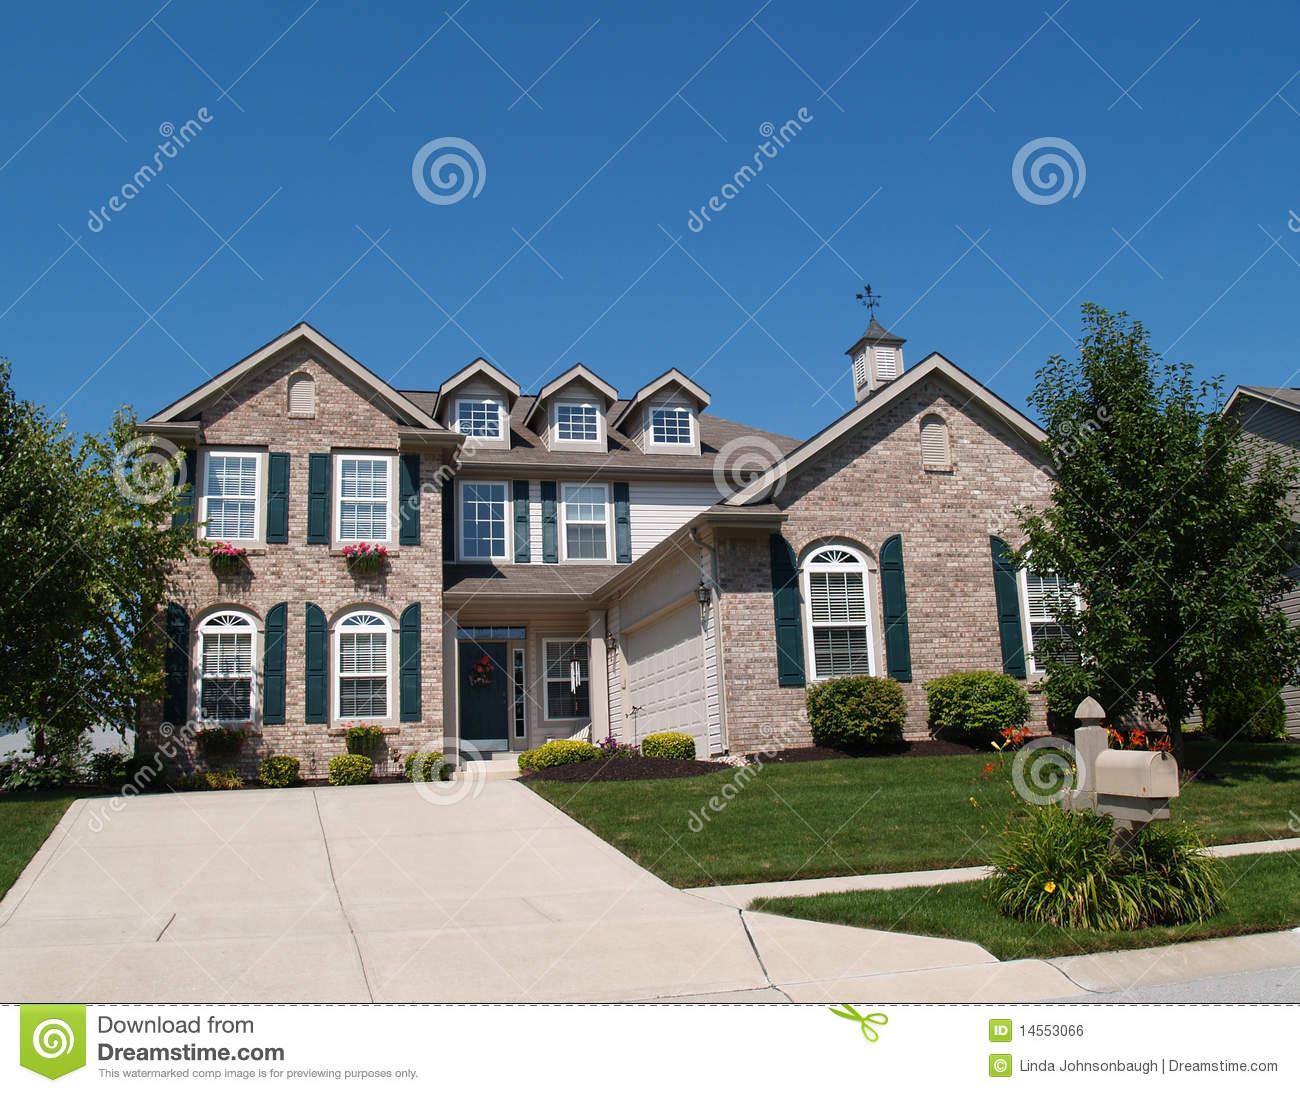 Two Story Brick Home With Window Boxes Royalty Free Stock